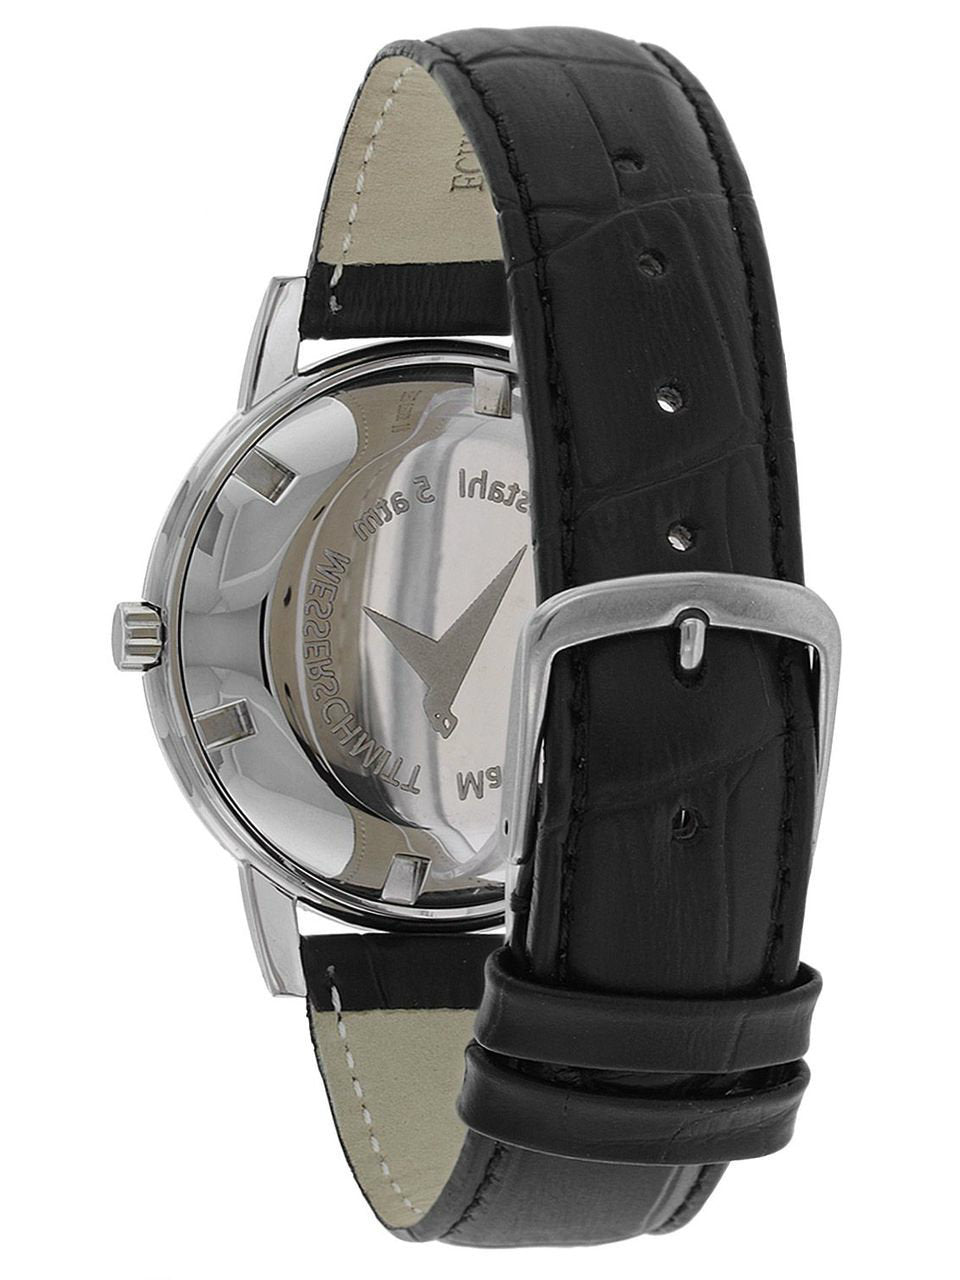 Messerschmitt Radiant Black Dial Special Edition Quartz Dress Watch KR200-AS